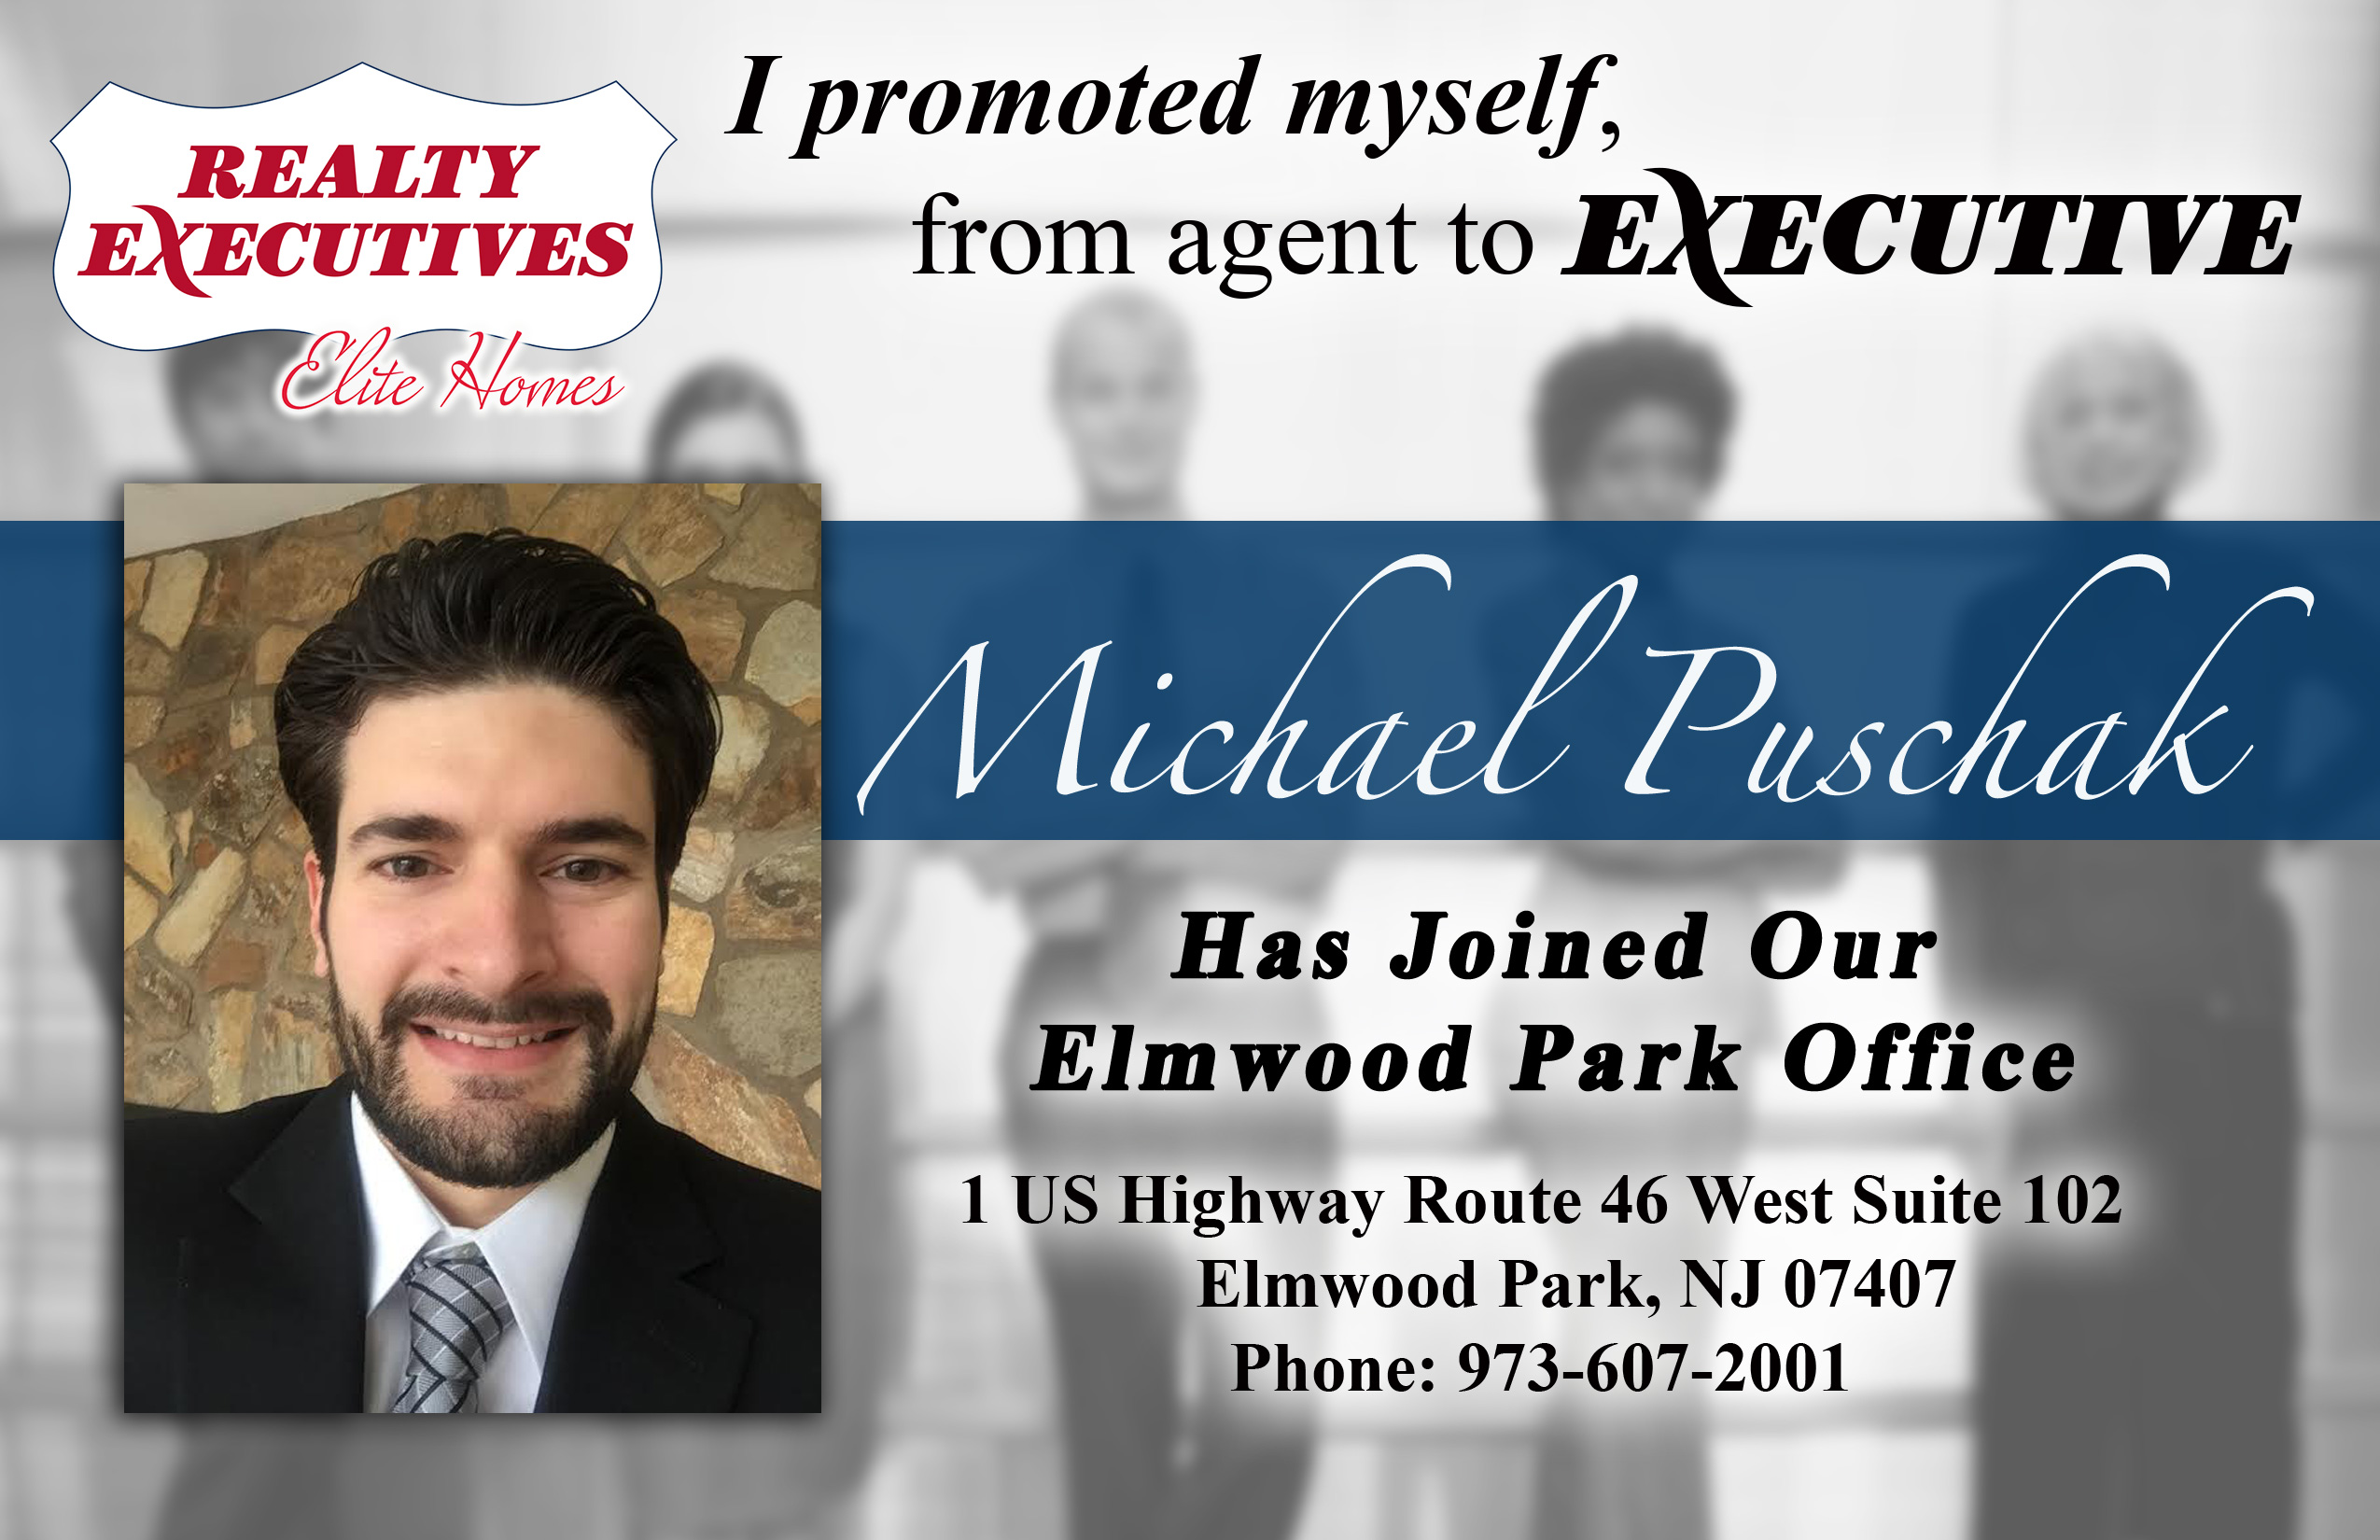 Michael Puschack Joins Realty Executives Elite Homes